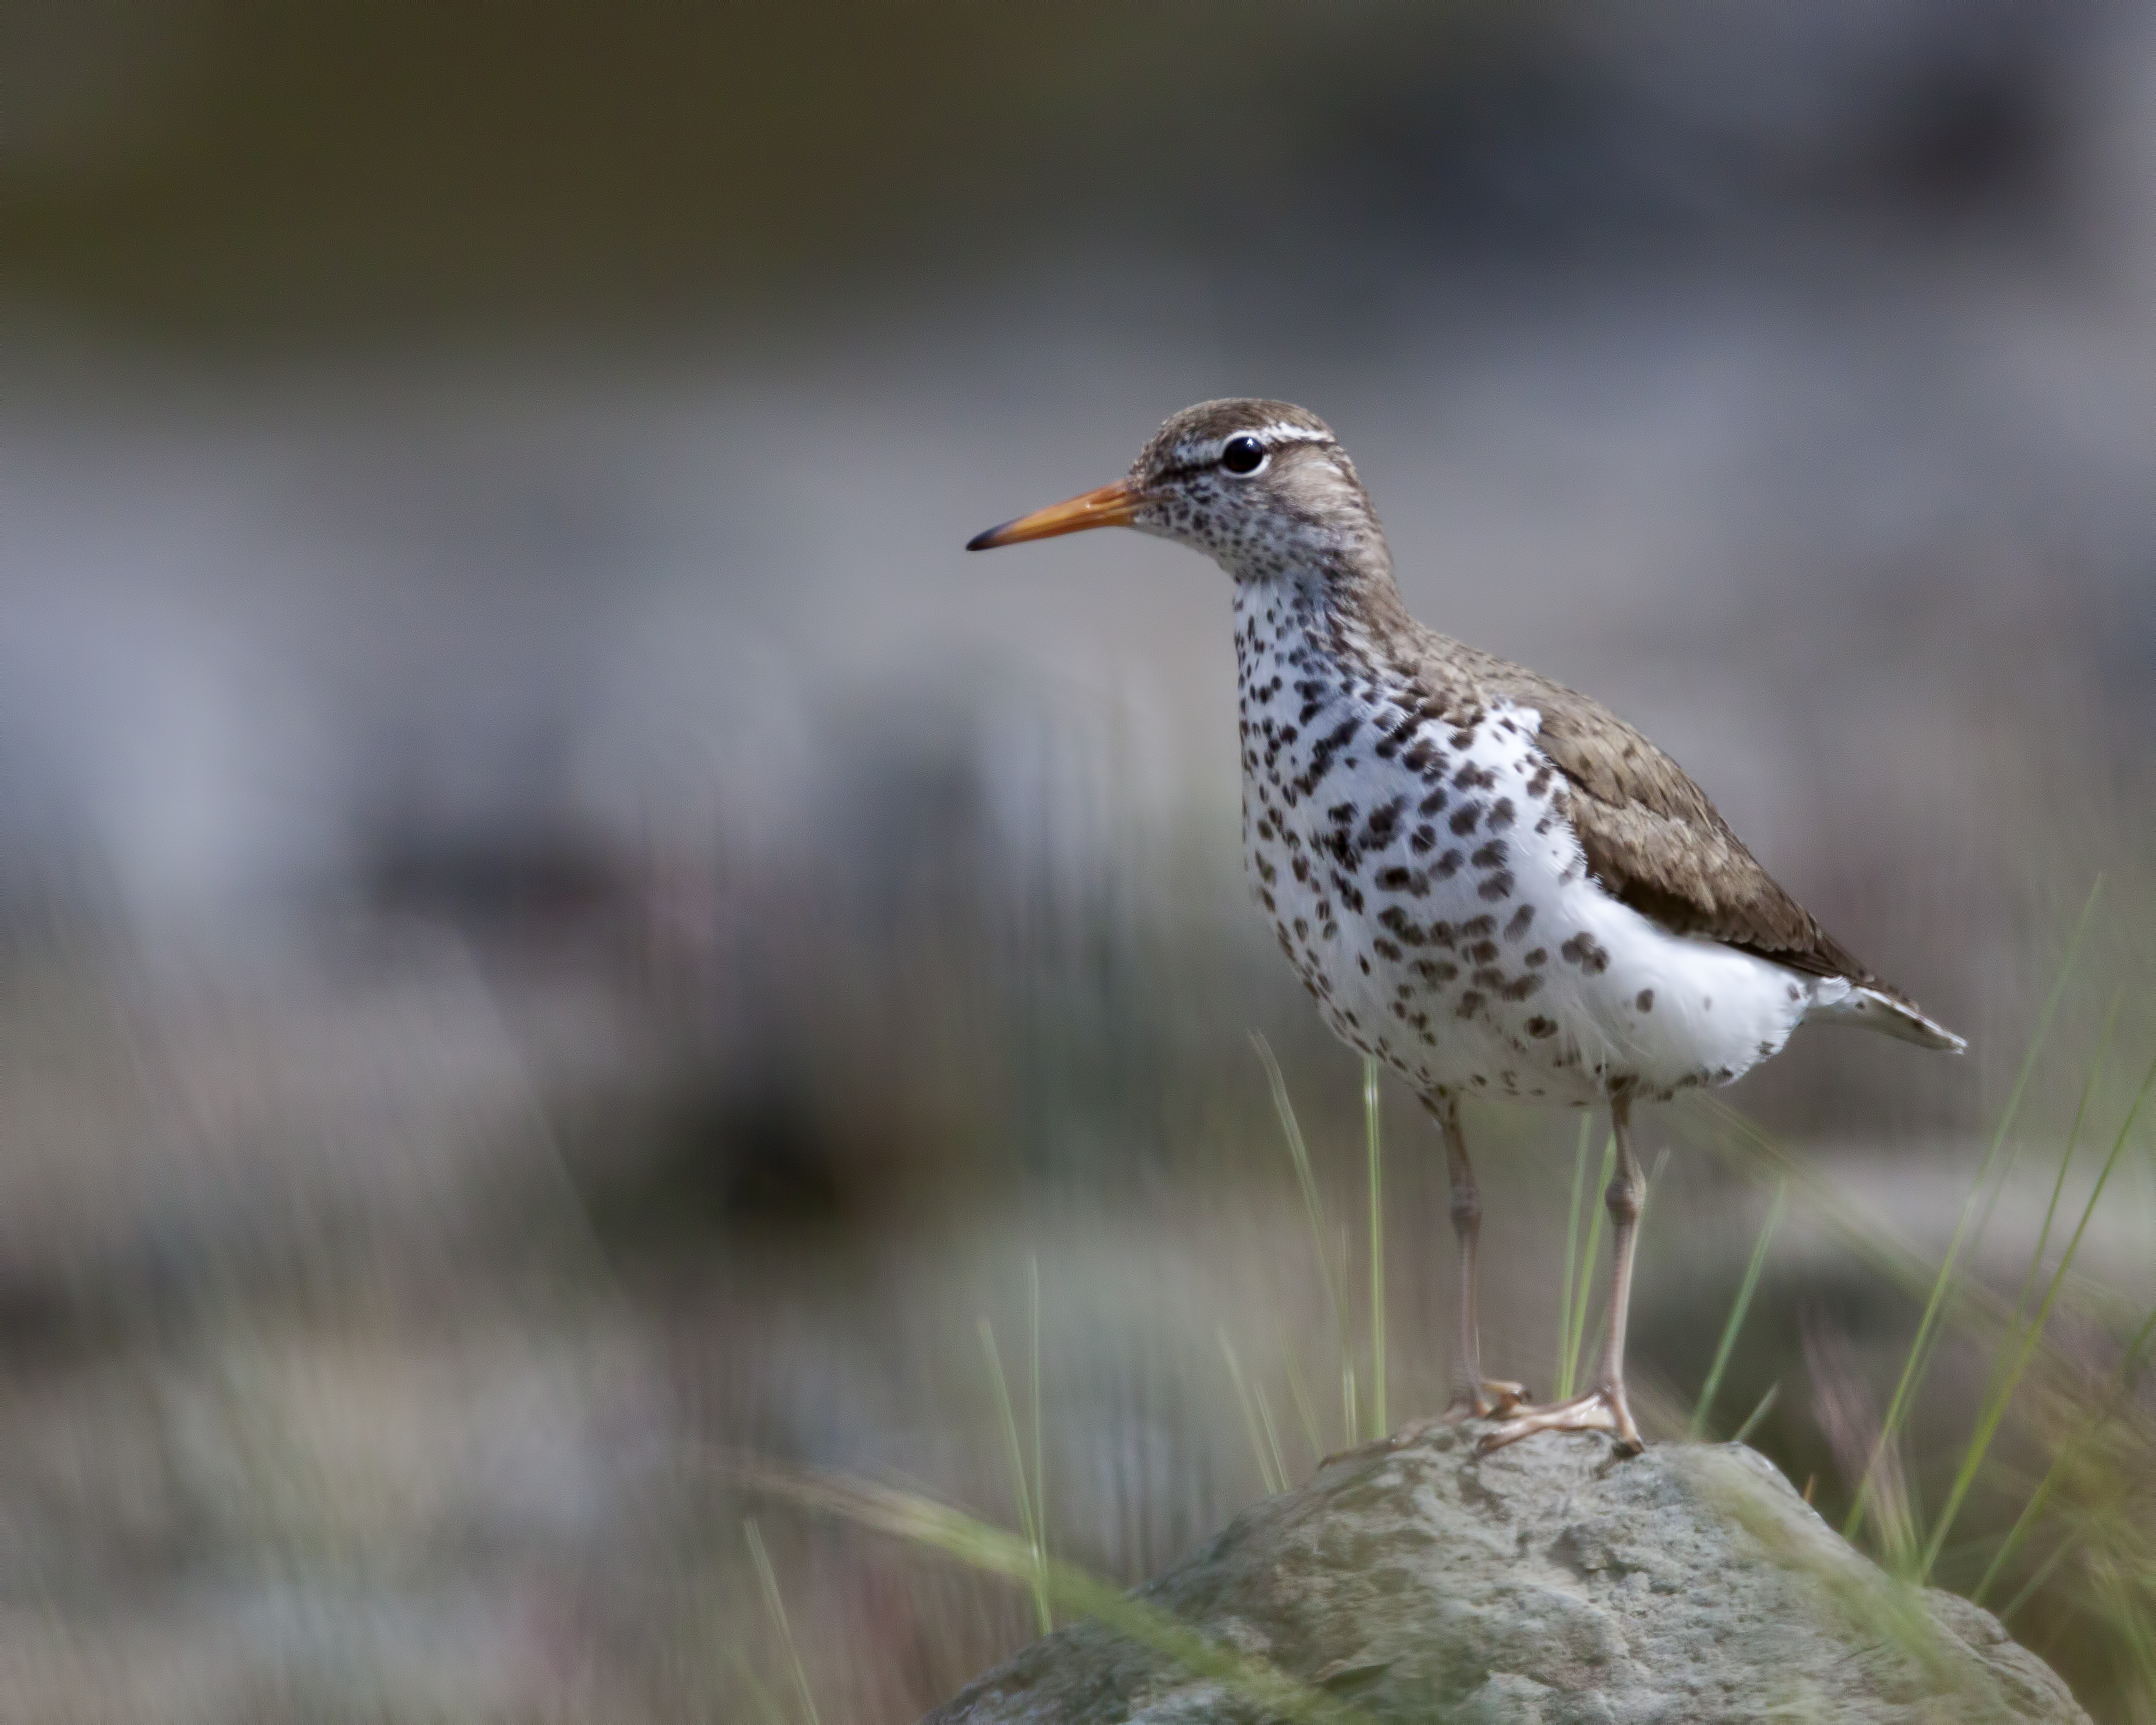 Spotted Sandpiper on a rock, Larry Master